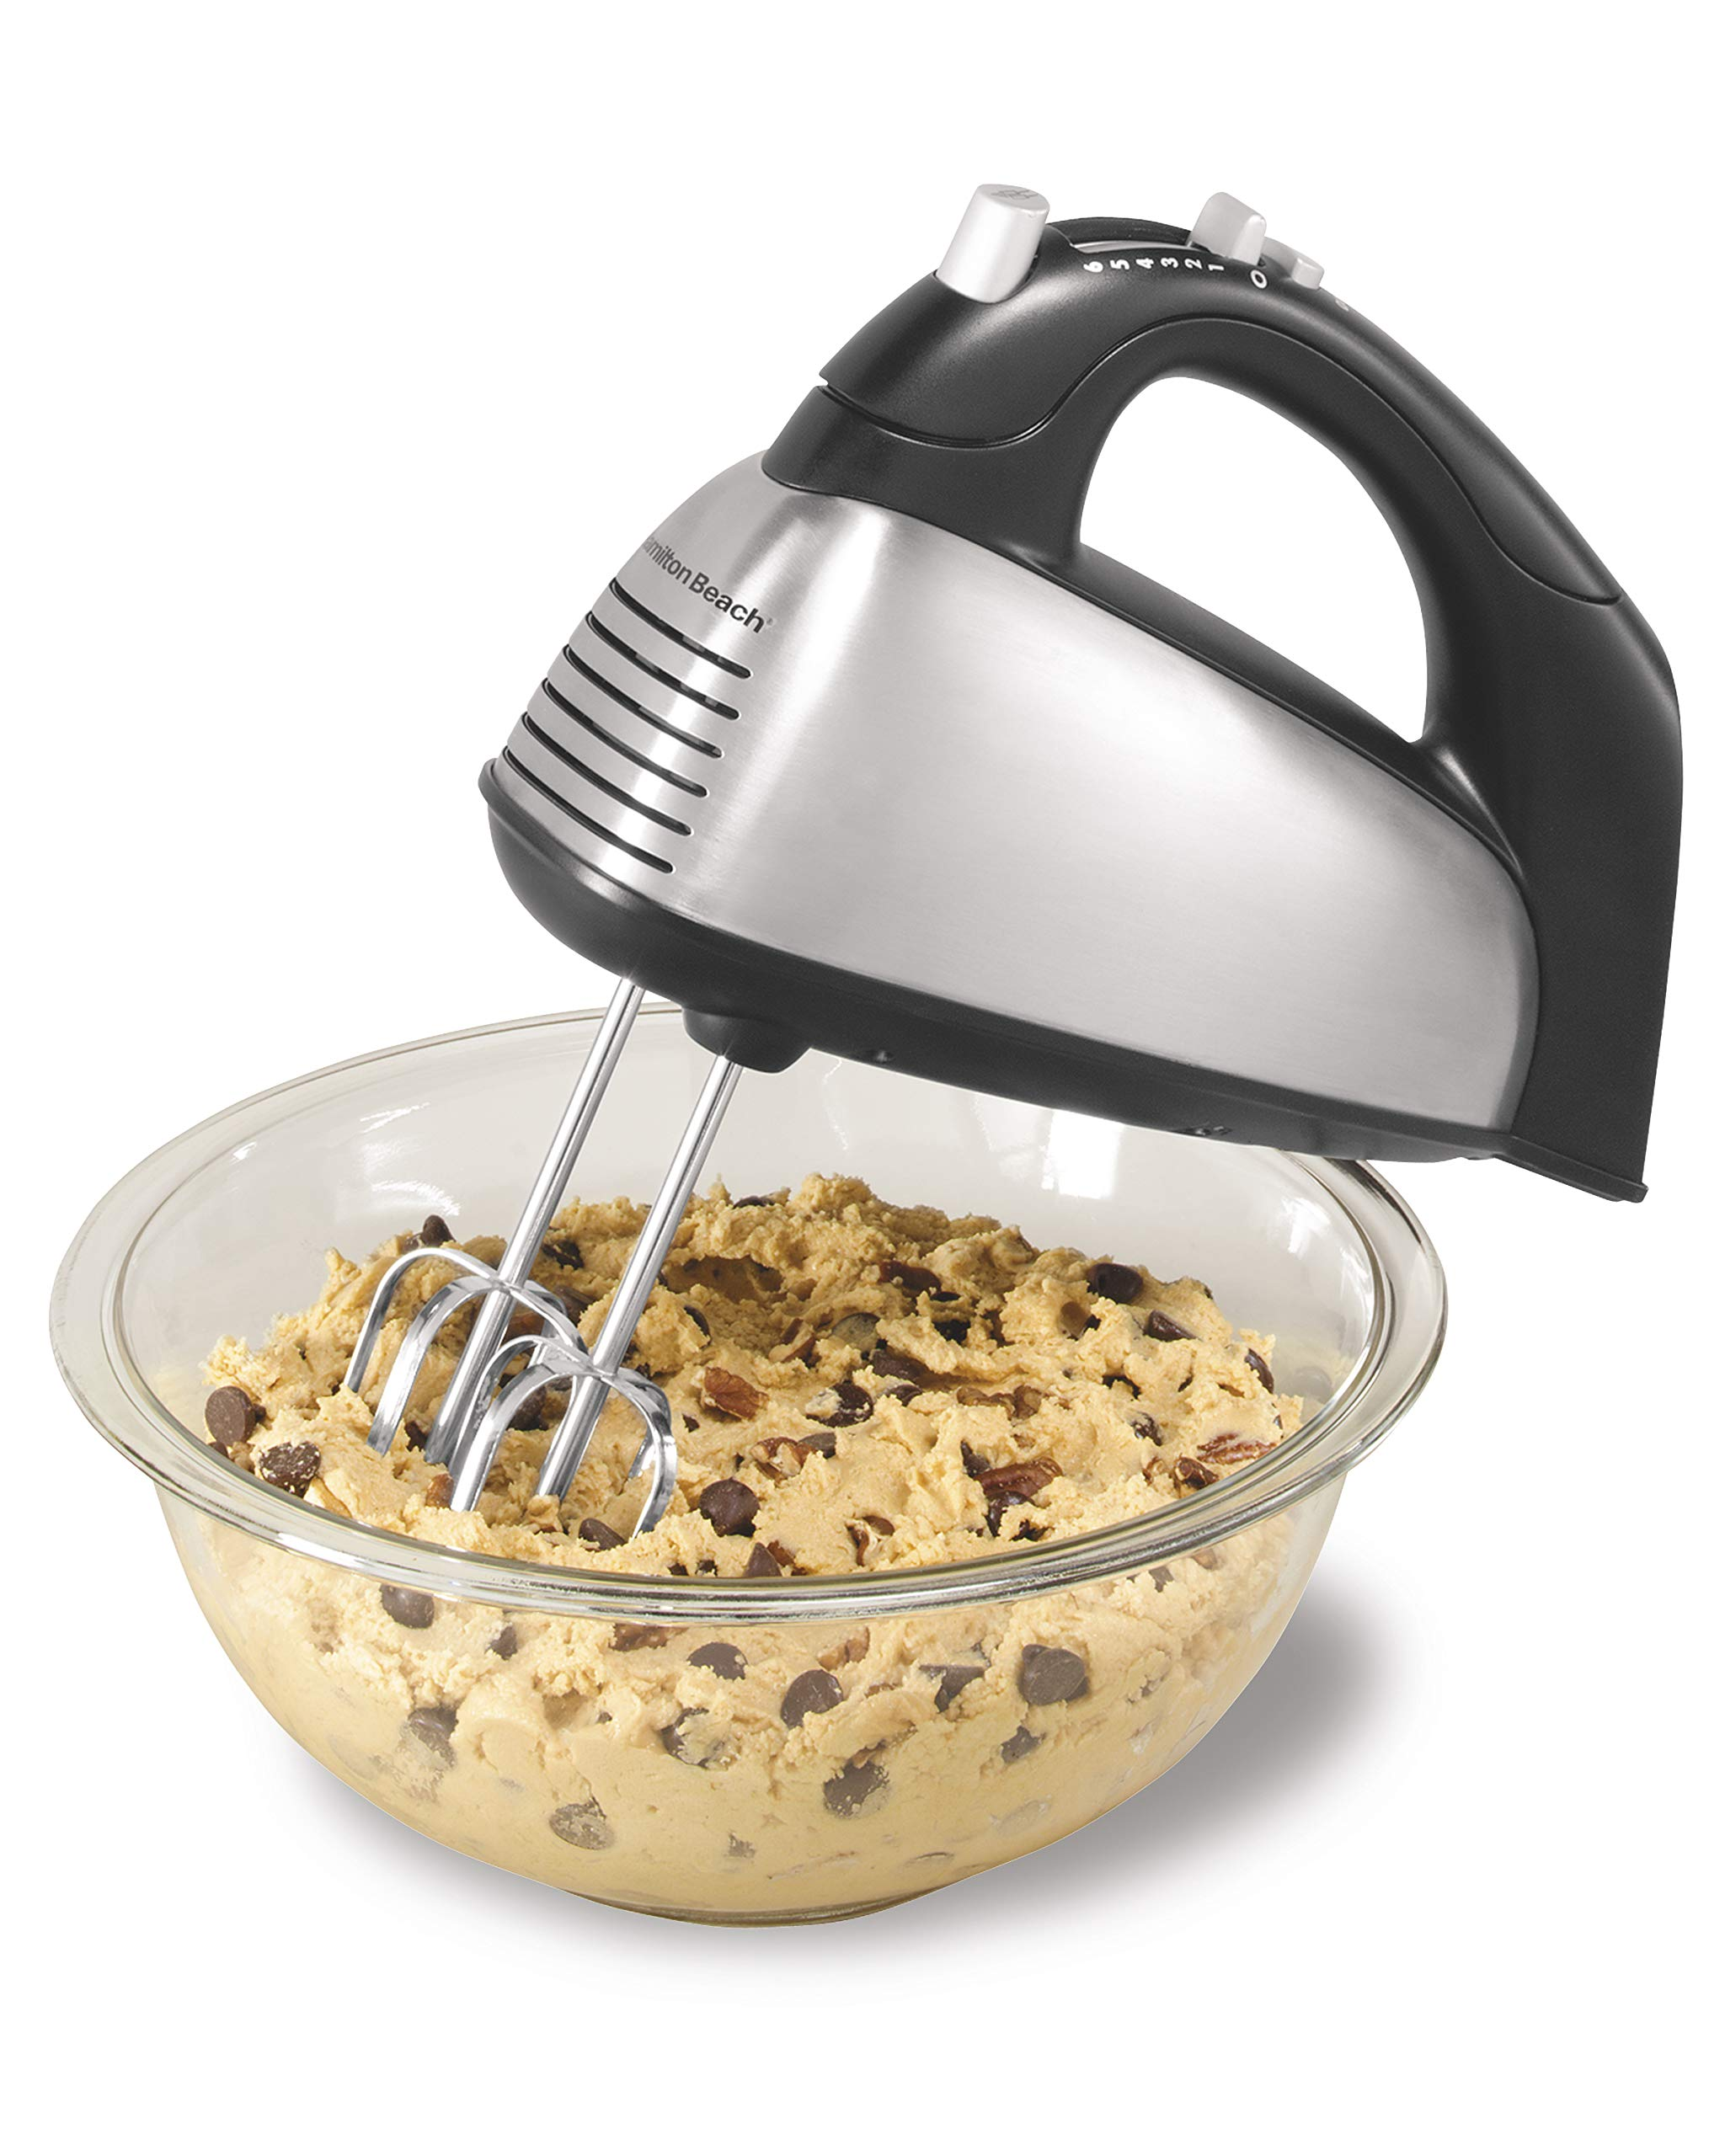 Hamilton Beach Classic 6-Speed Electric Hand Mixer with Snap-On Storage Case, Whisk, Traditional and Wire Beaters, Brushed Stainless (62650A) by Hamilton Beach